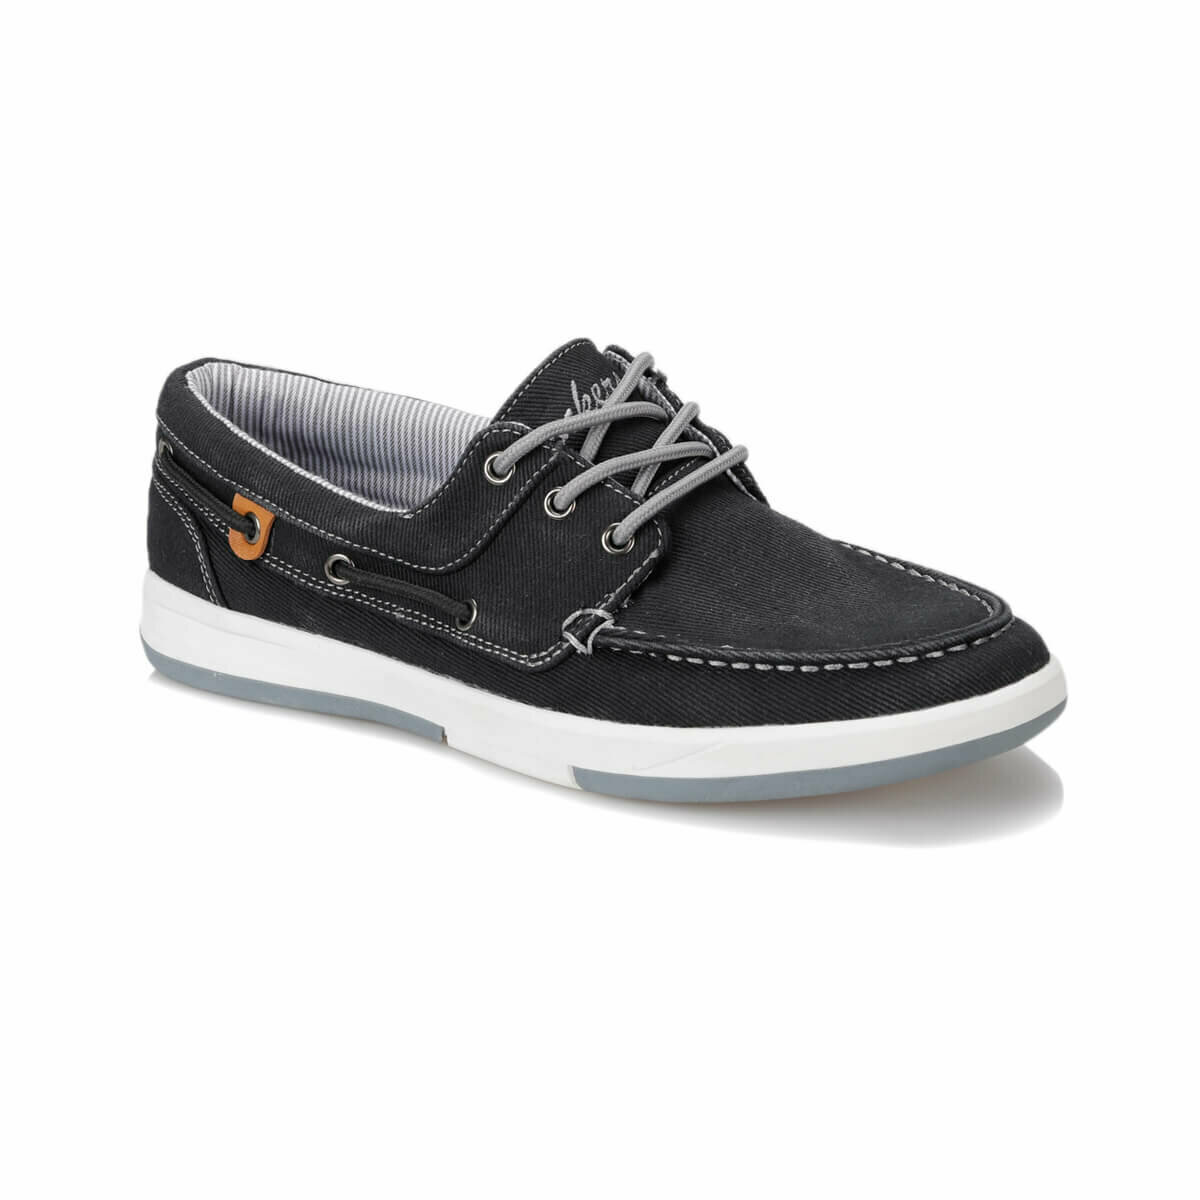 FLO 226535 Black Mens Marin Shoes By Dockers The Gerle